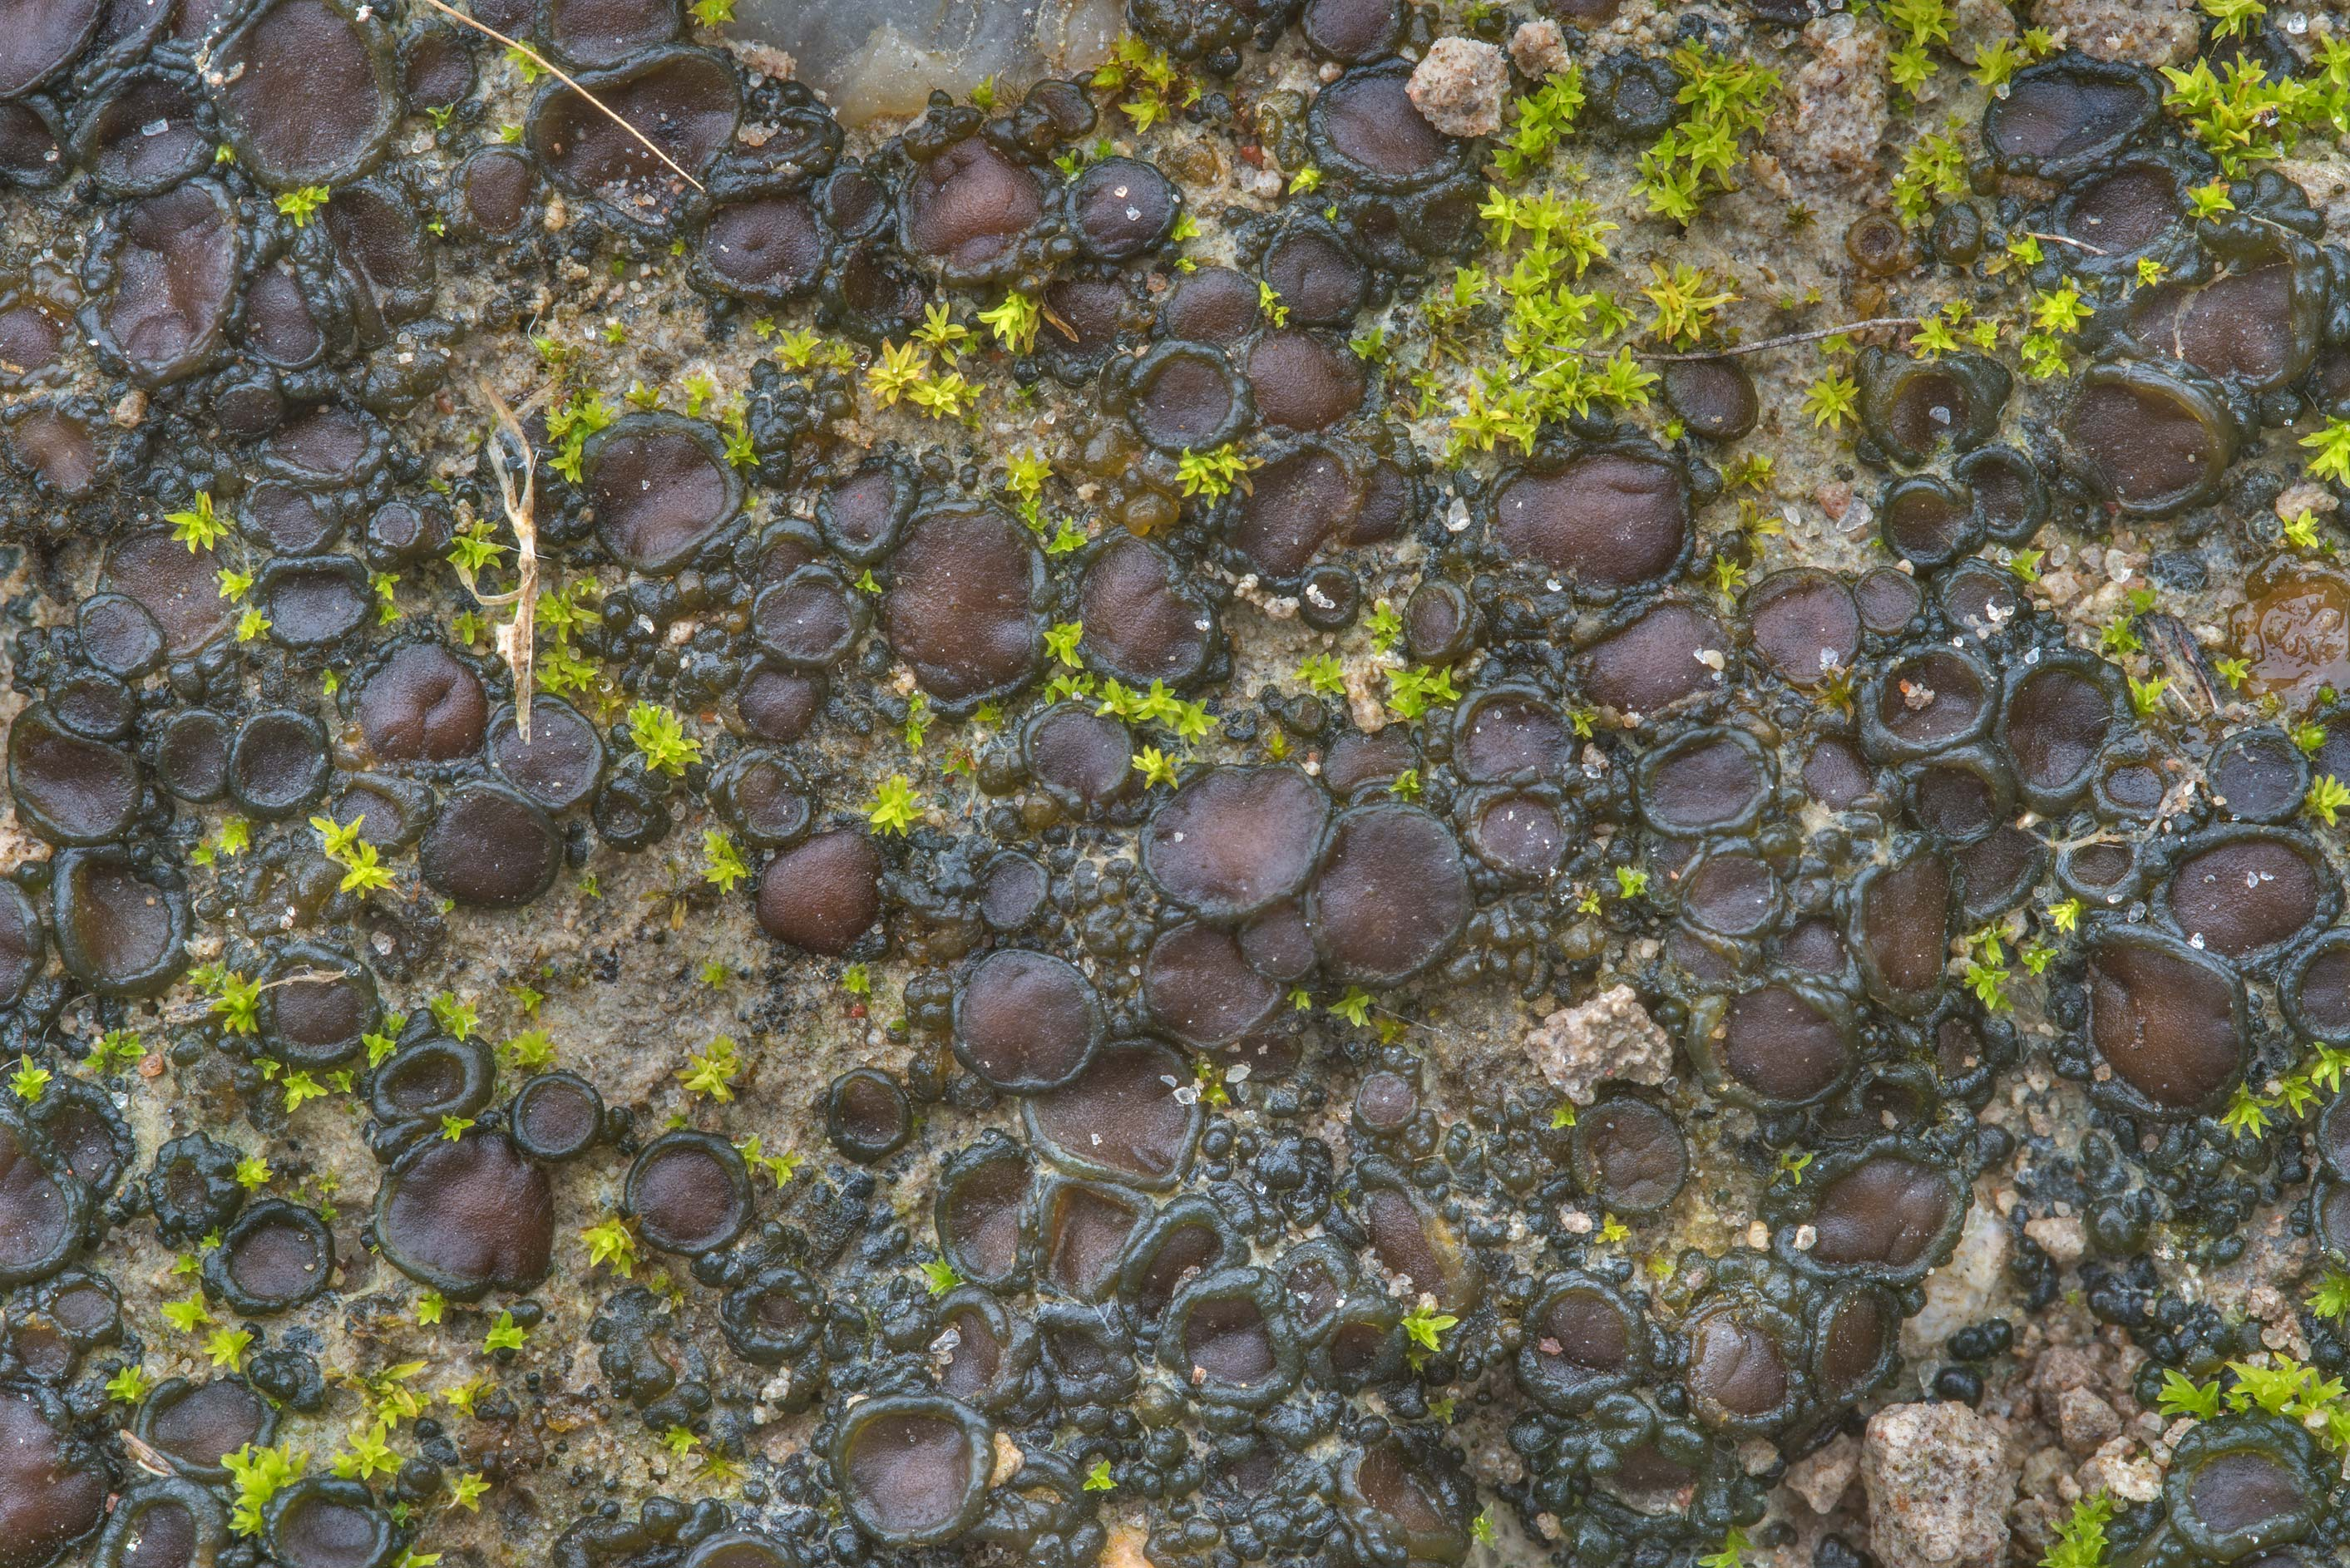 Tar-jelly lichen (Collema tenax) on a trodden...Ashburn St.. College Station, Texas